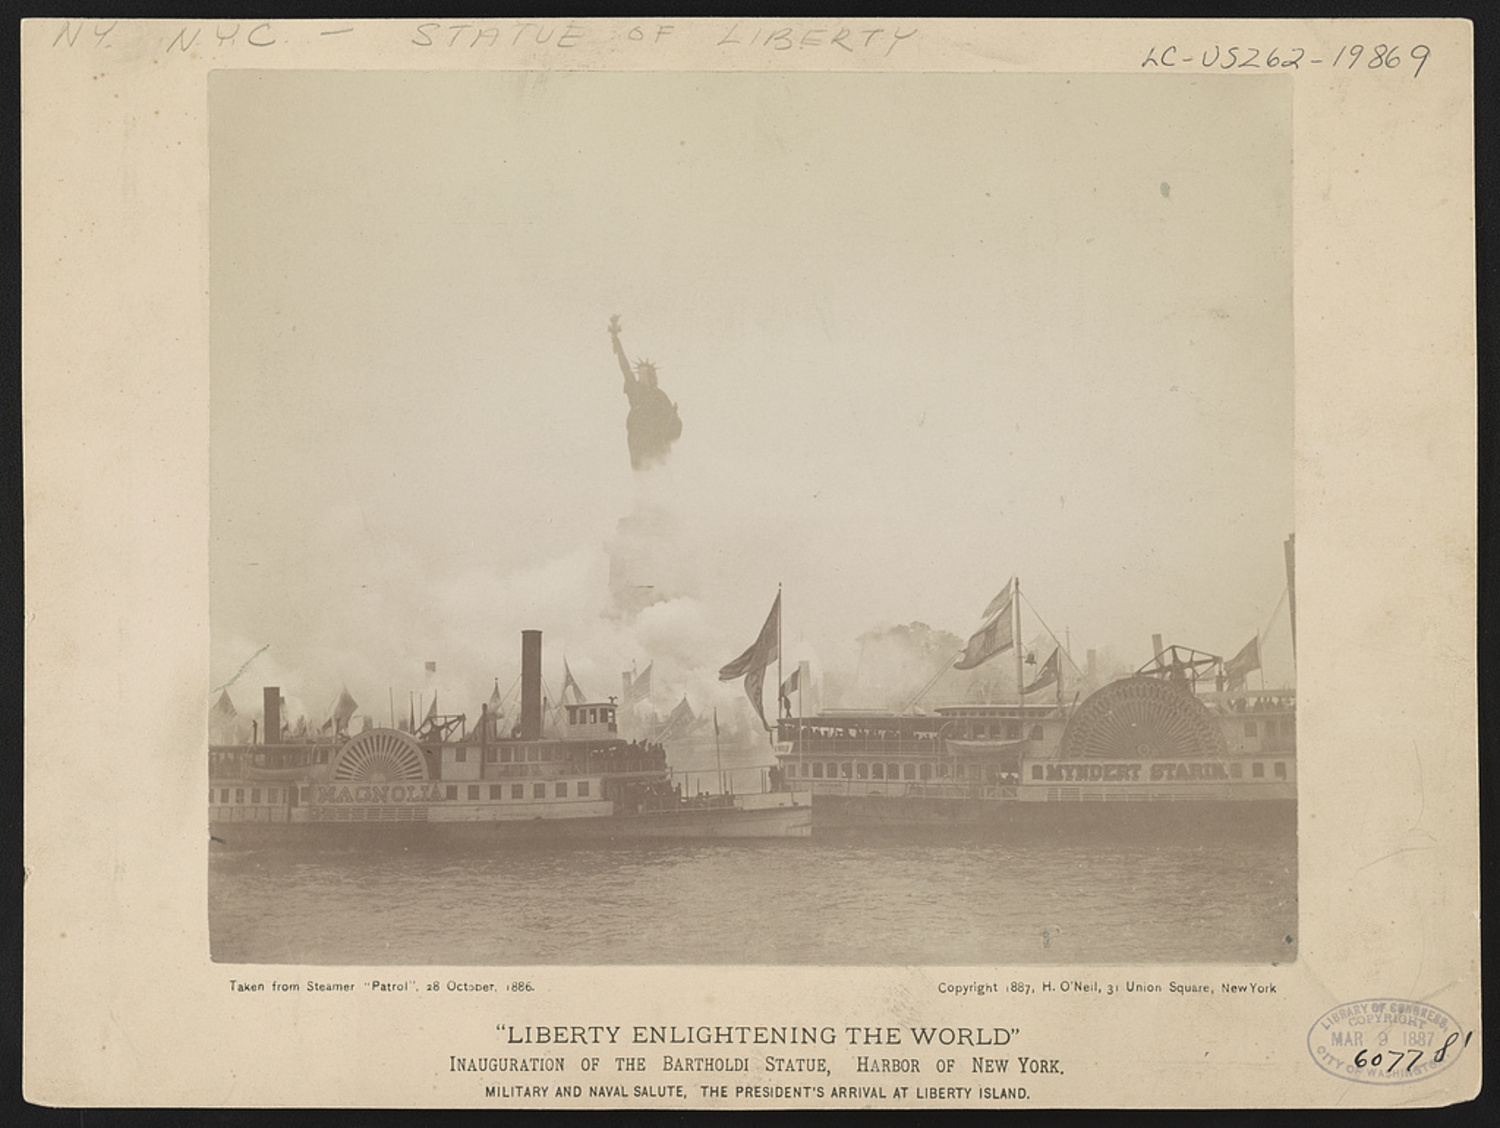 Liberty enlightening the world--Inauguration of the Bartholdi Statue, Harbor of New York--Military and naval salute, the President's arrival at Liberty Island, ca. 1886.